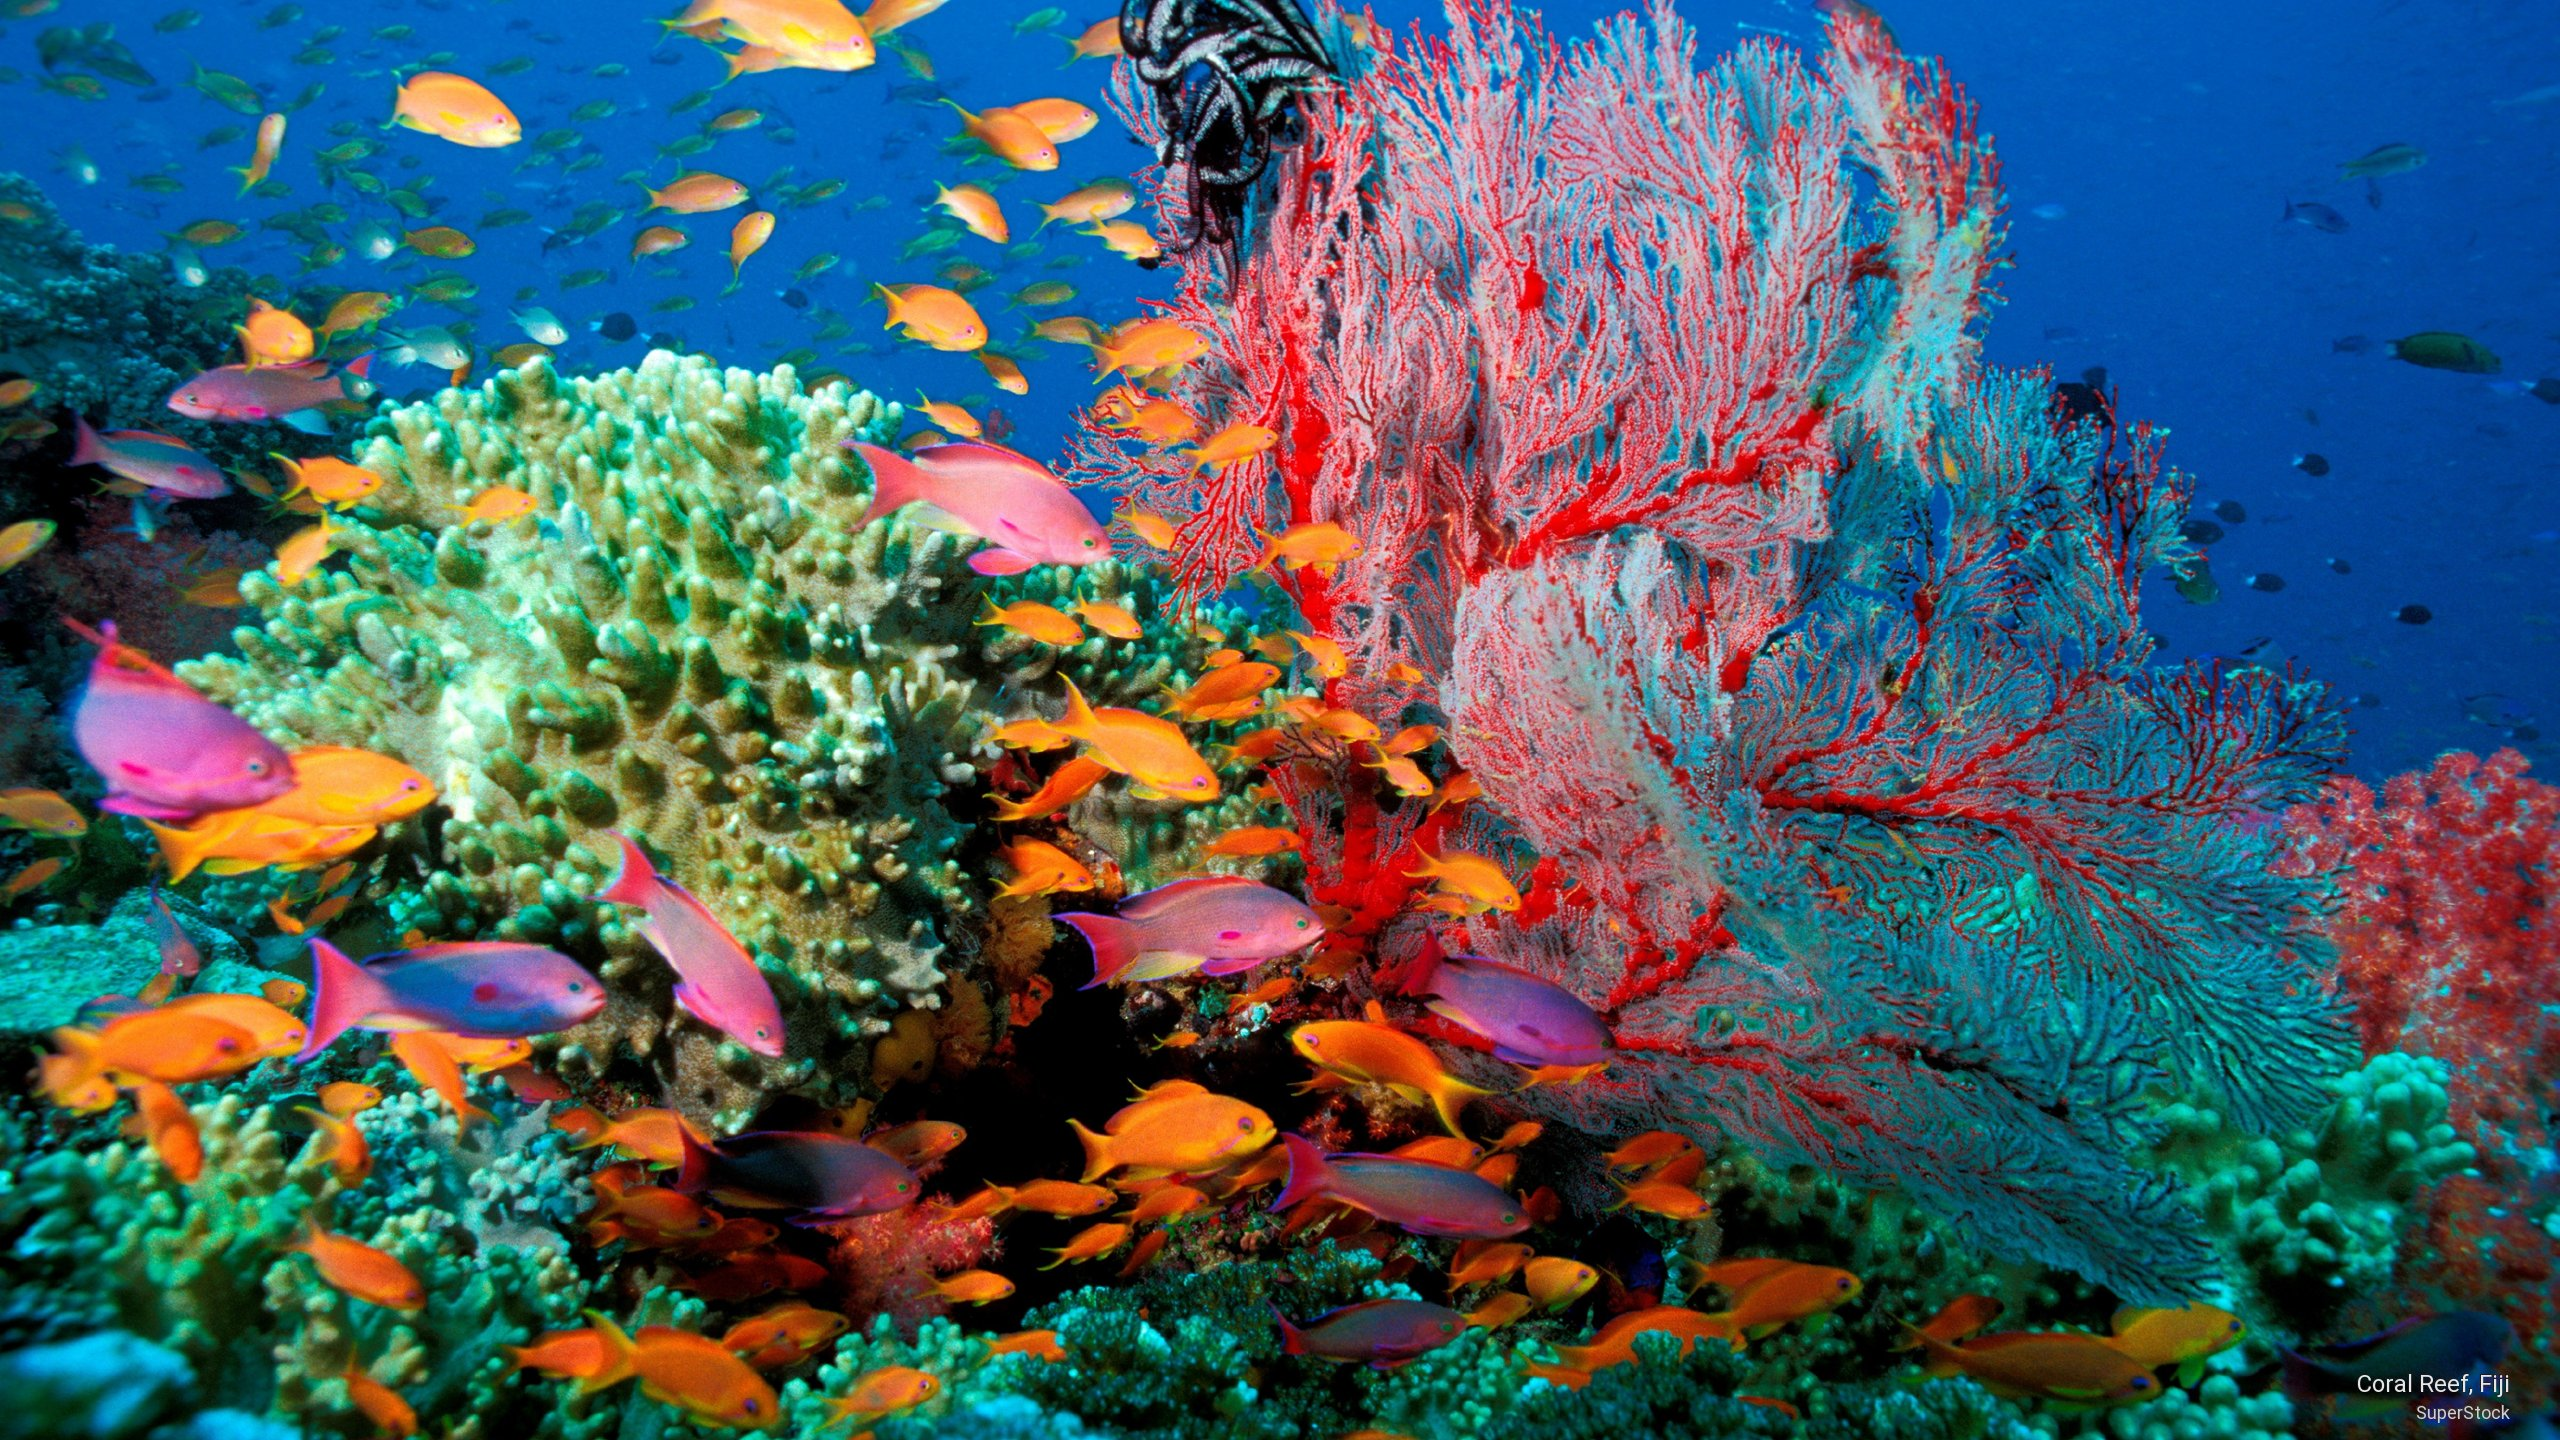 Free coral reef wallpaper wallpapersafari for Disegni coralli marini